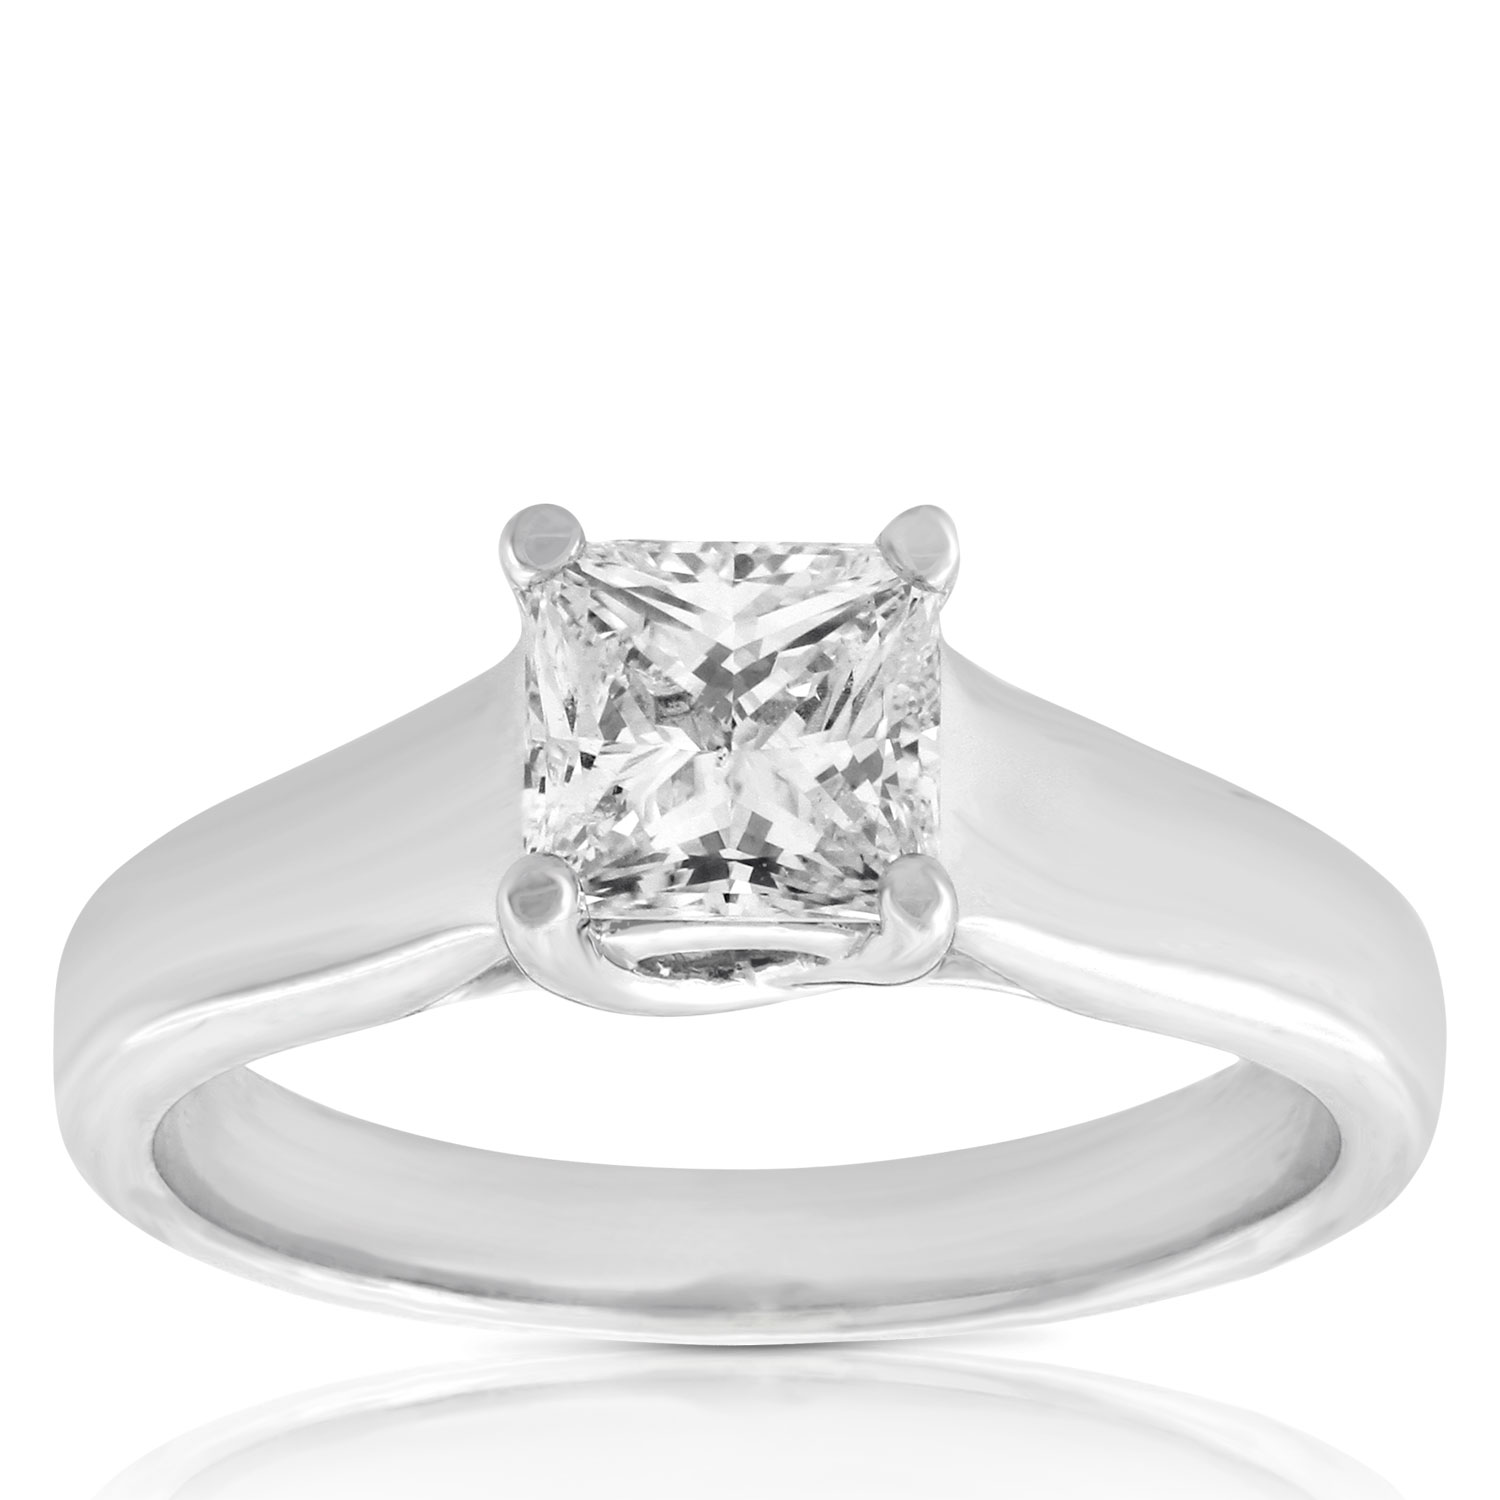 Ikuma Canadian Princess Cut Diamond Solitaire Ring 14k 1 Ct Ben Bridge Jeweler